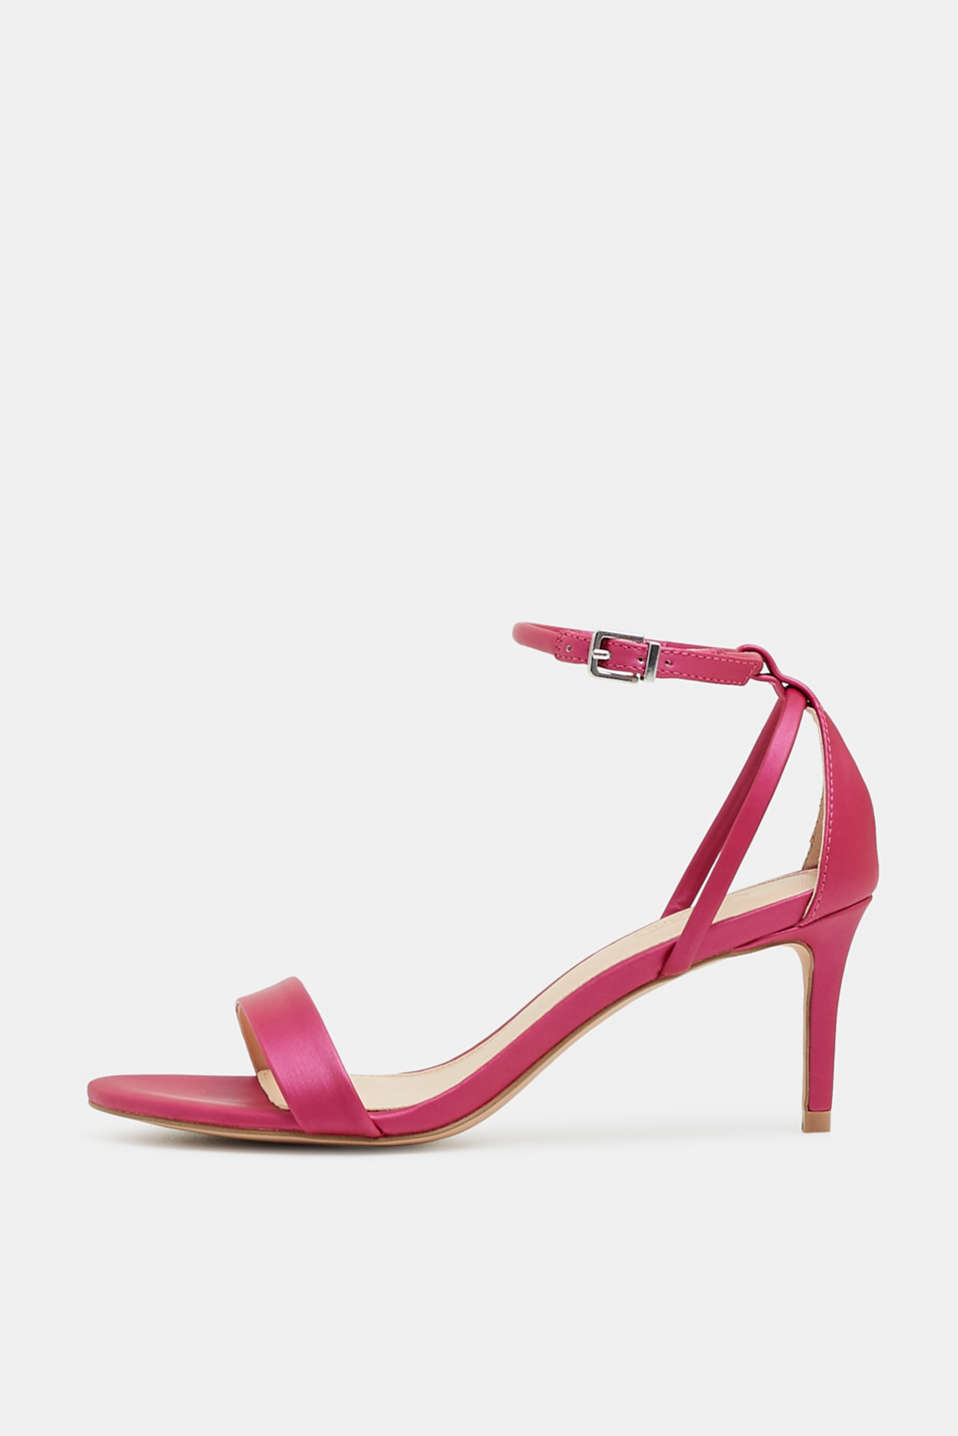 Esprit - Strappy sandals with a matt, metallic finish